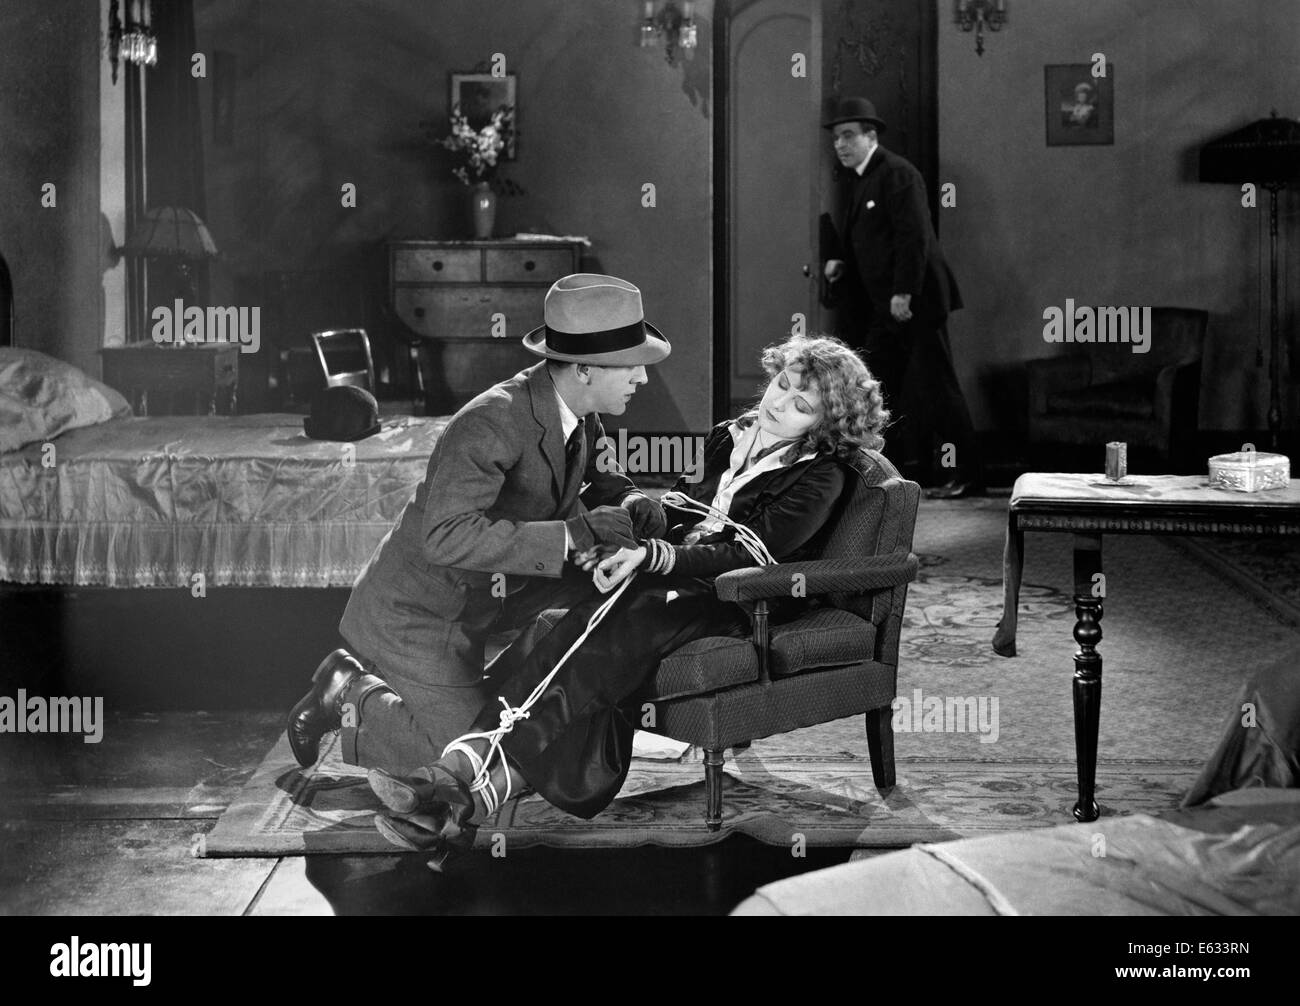 1930s MOVIE STILL OF MAN RESCUING WOMAN TIED UP IN CHAIR - Stock Image